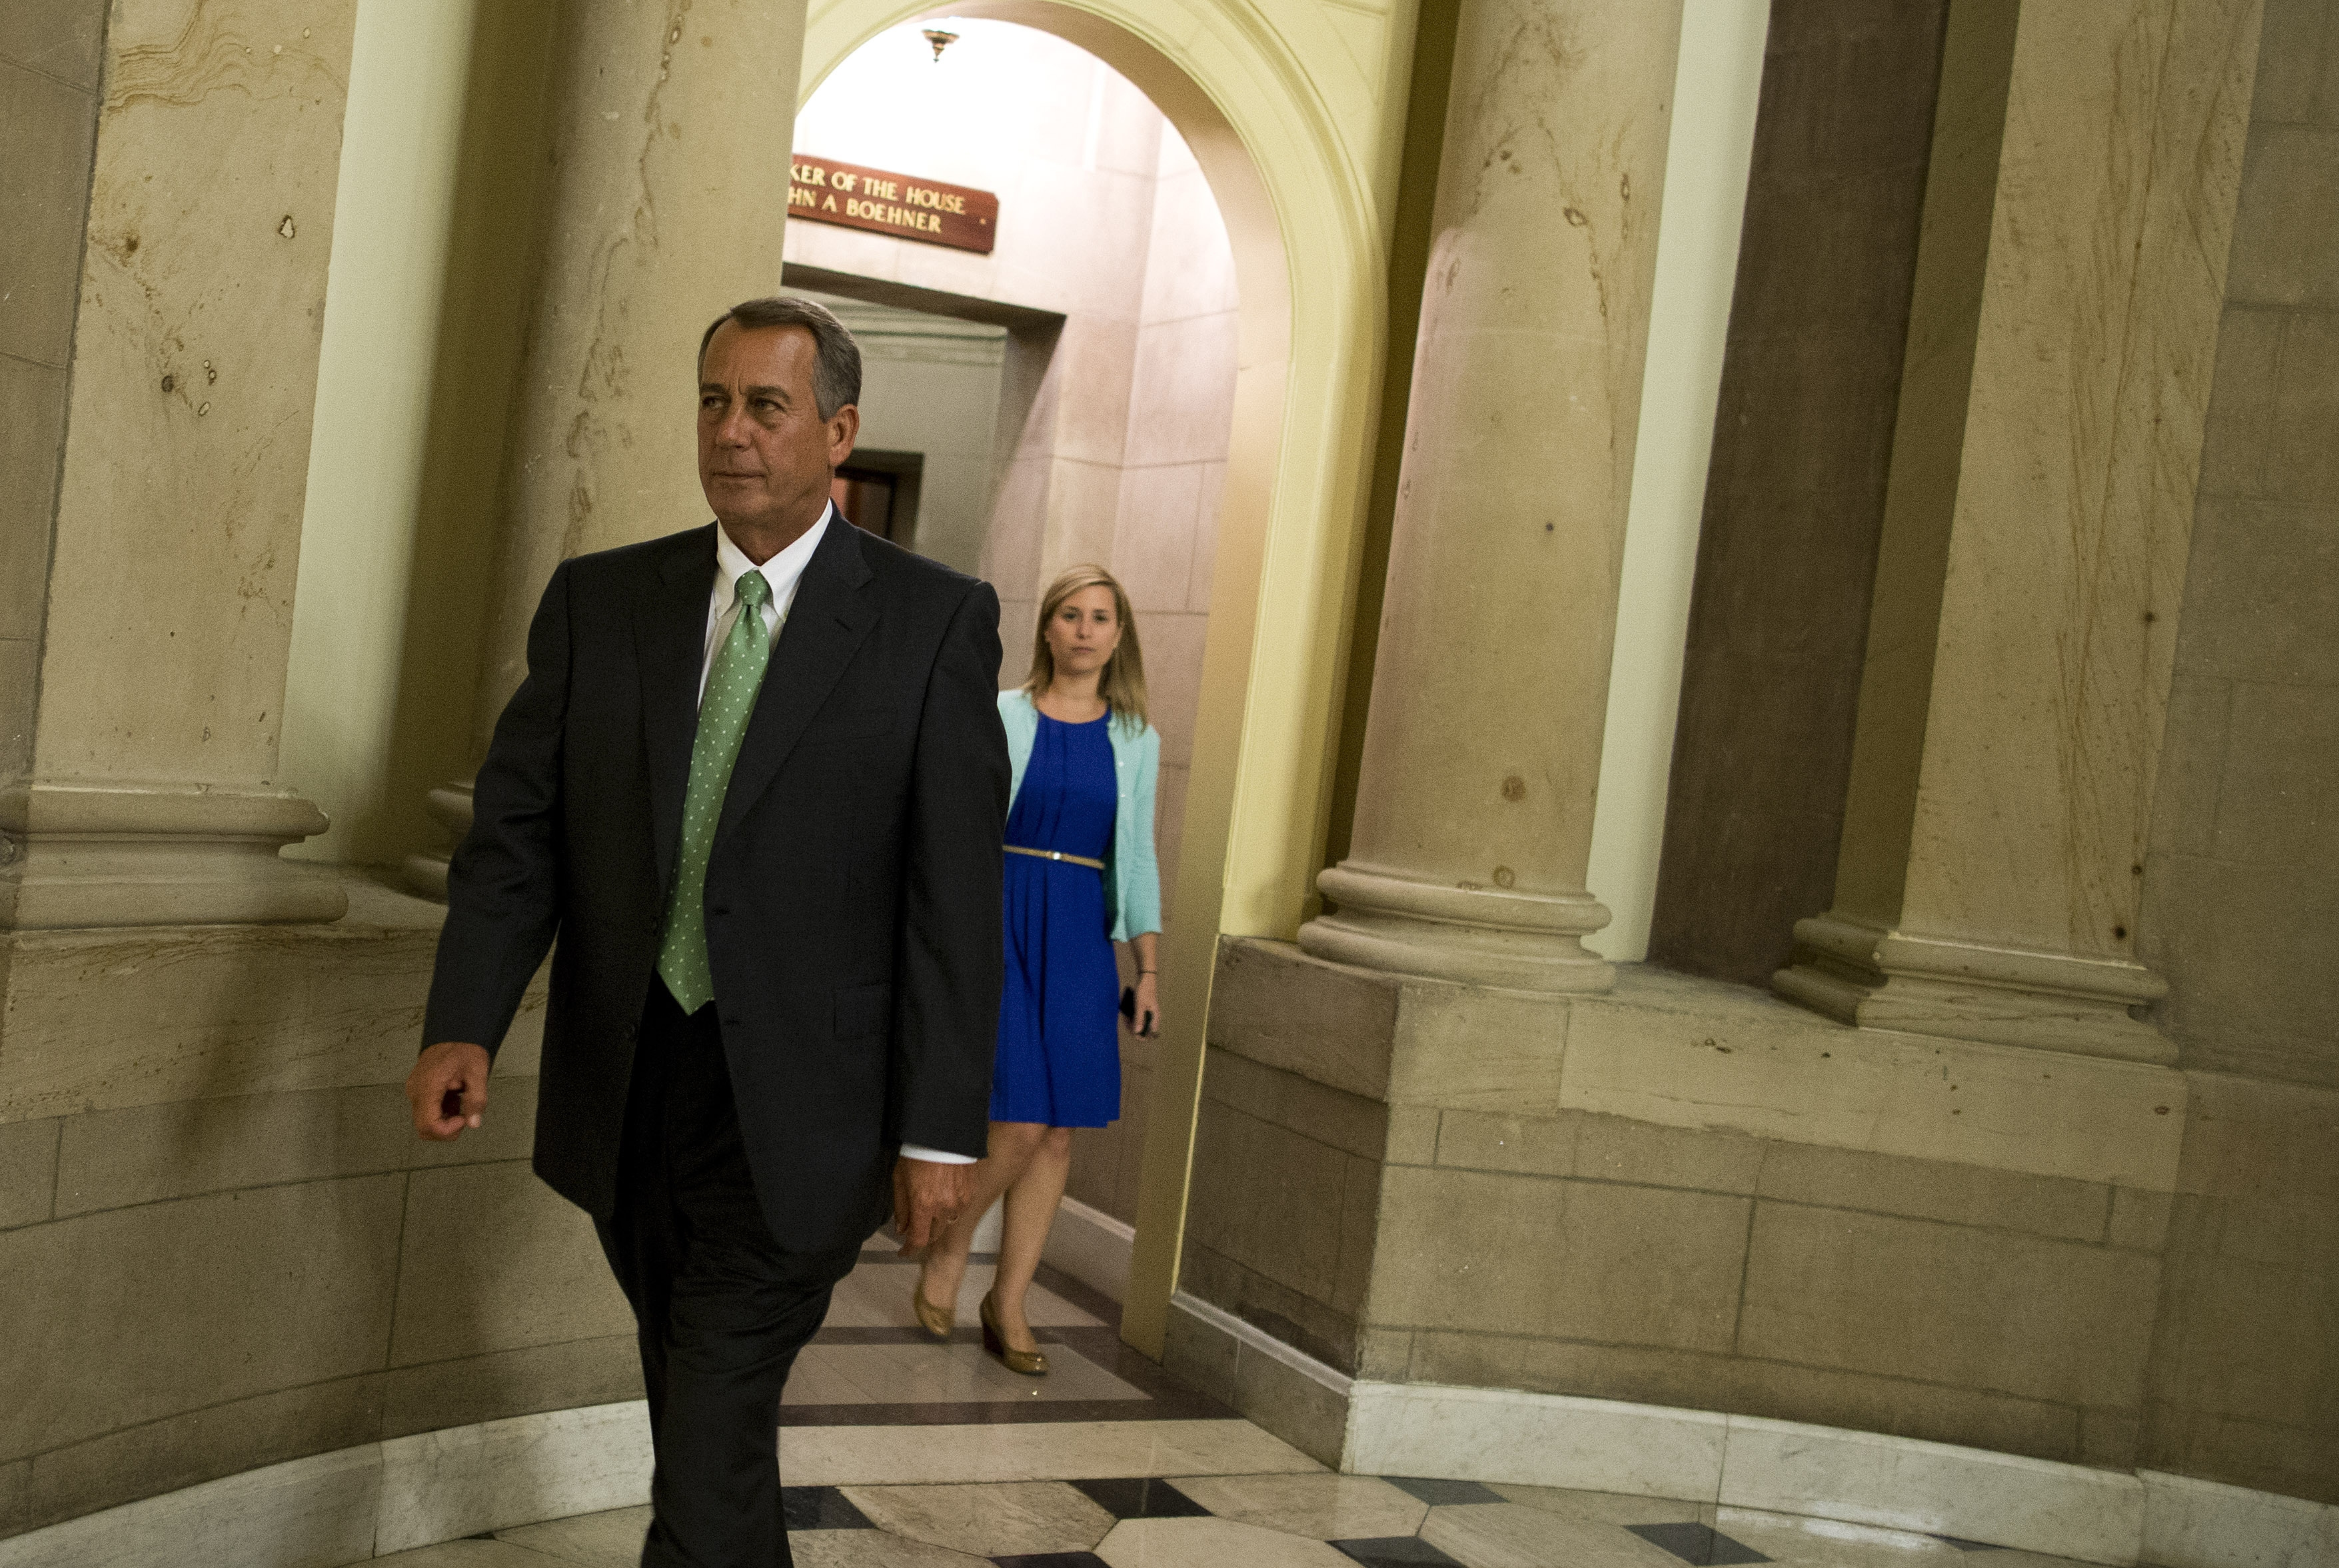 Ten months after saying Republicans would back off their attempt to repeal the Affordable Care Act, Speaker of the House Rep. John Boehner, R-Ohio, changed his mind.